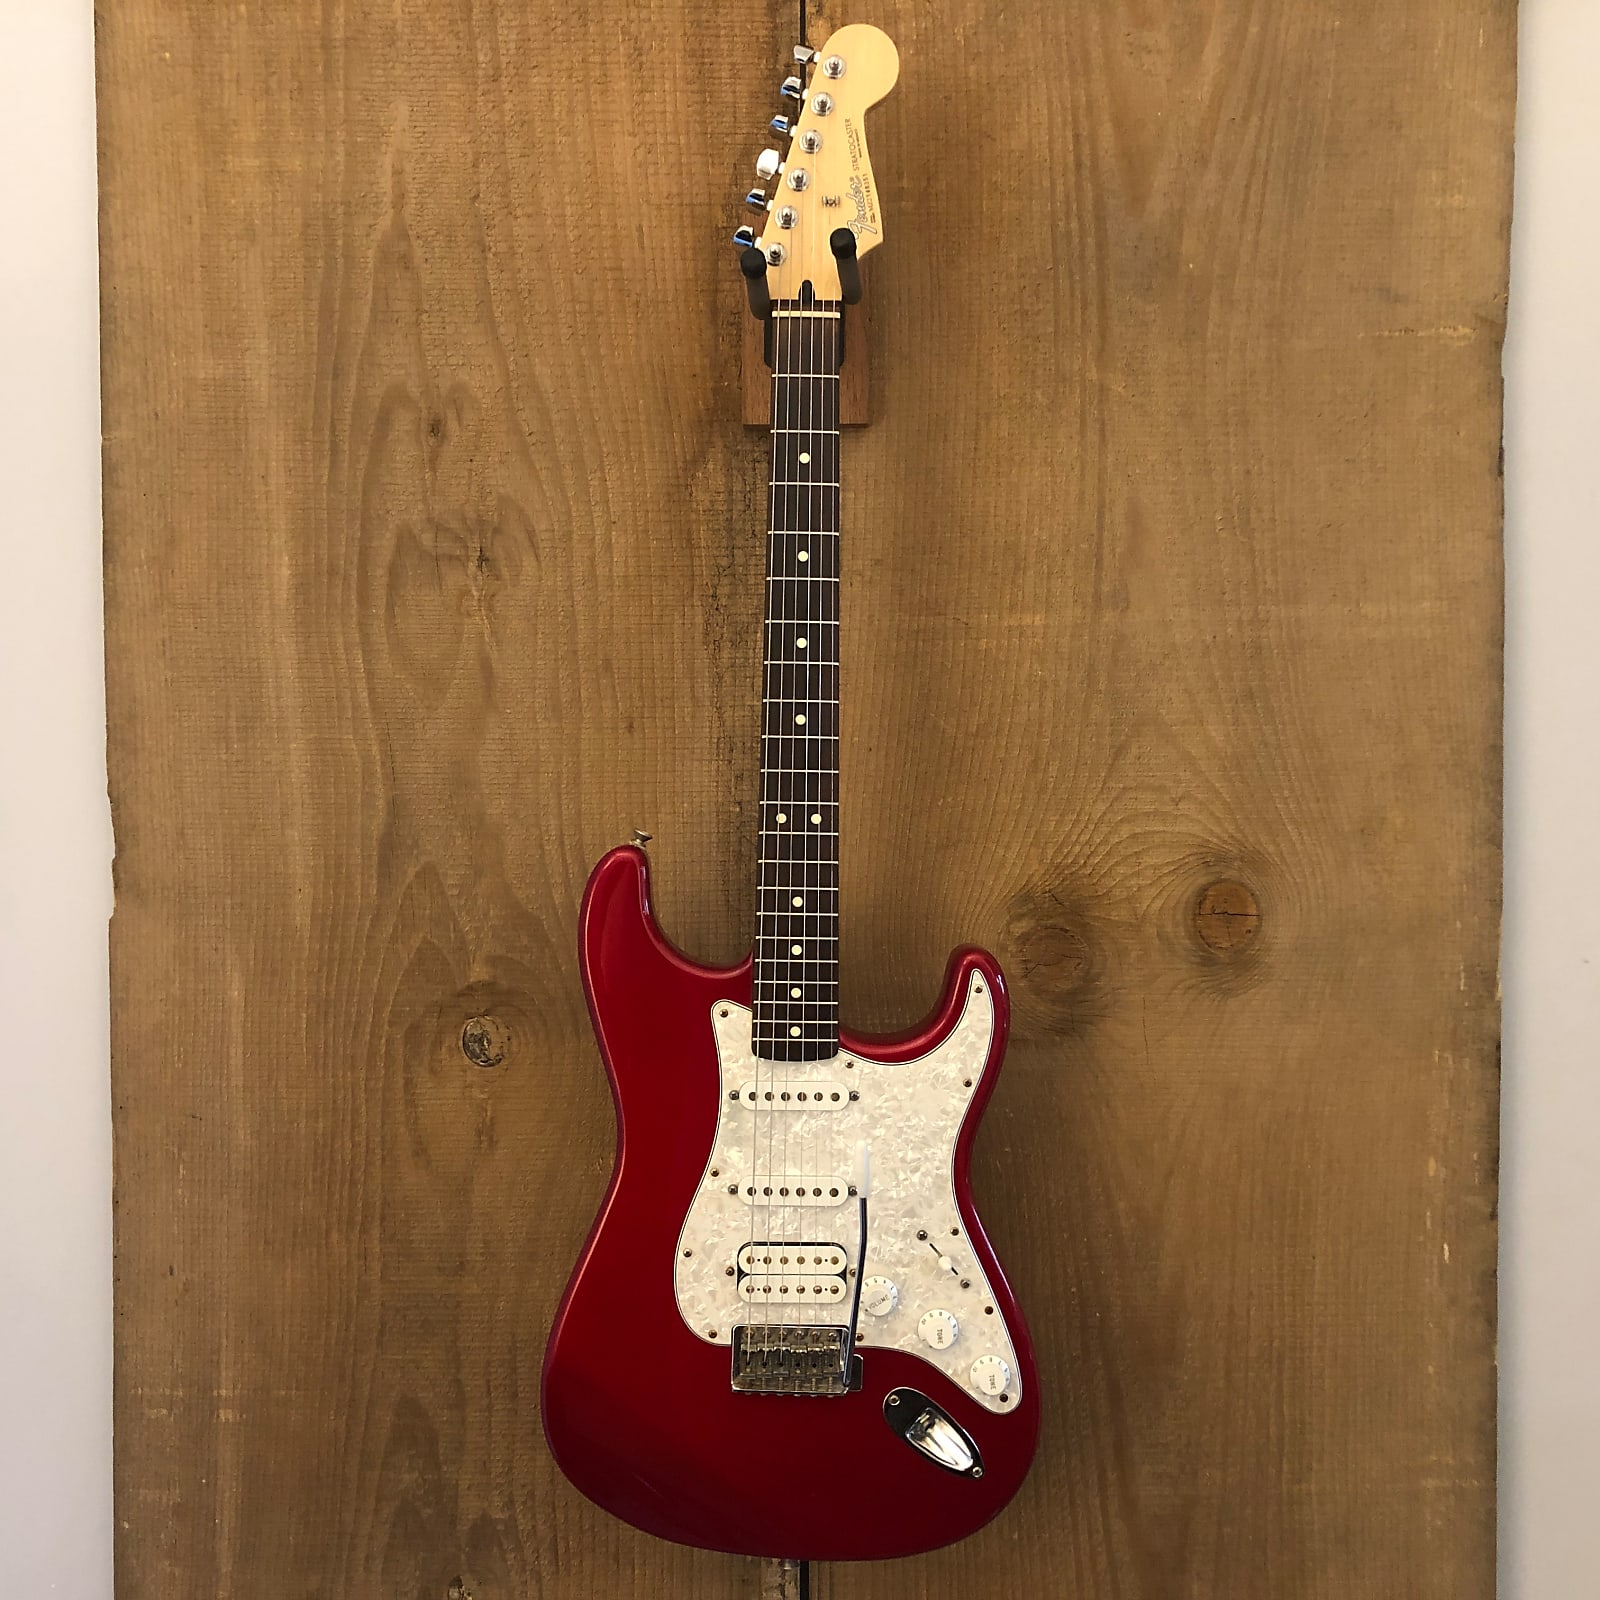 Fender Traditional Fat Strat HSS Stratocaster MIM Candy Apple Red 2002 Mexico